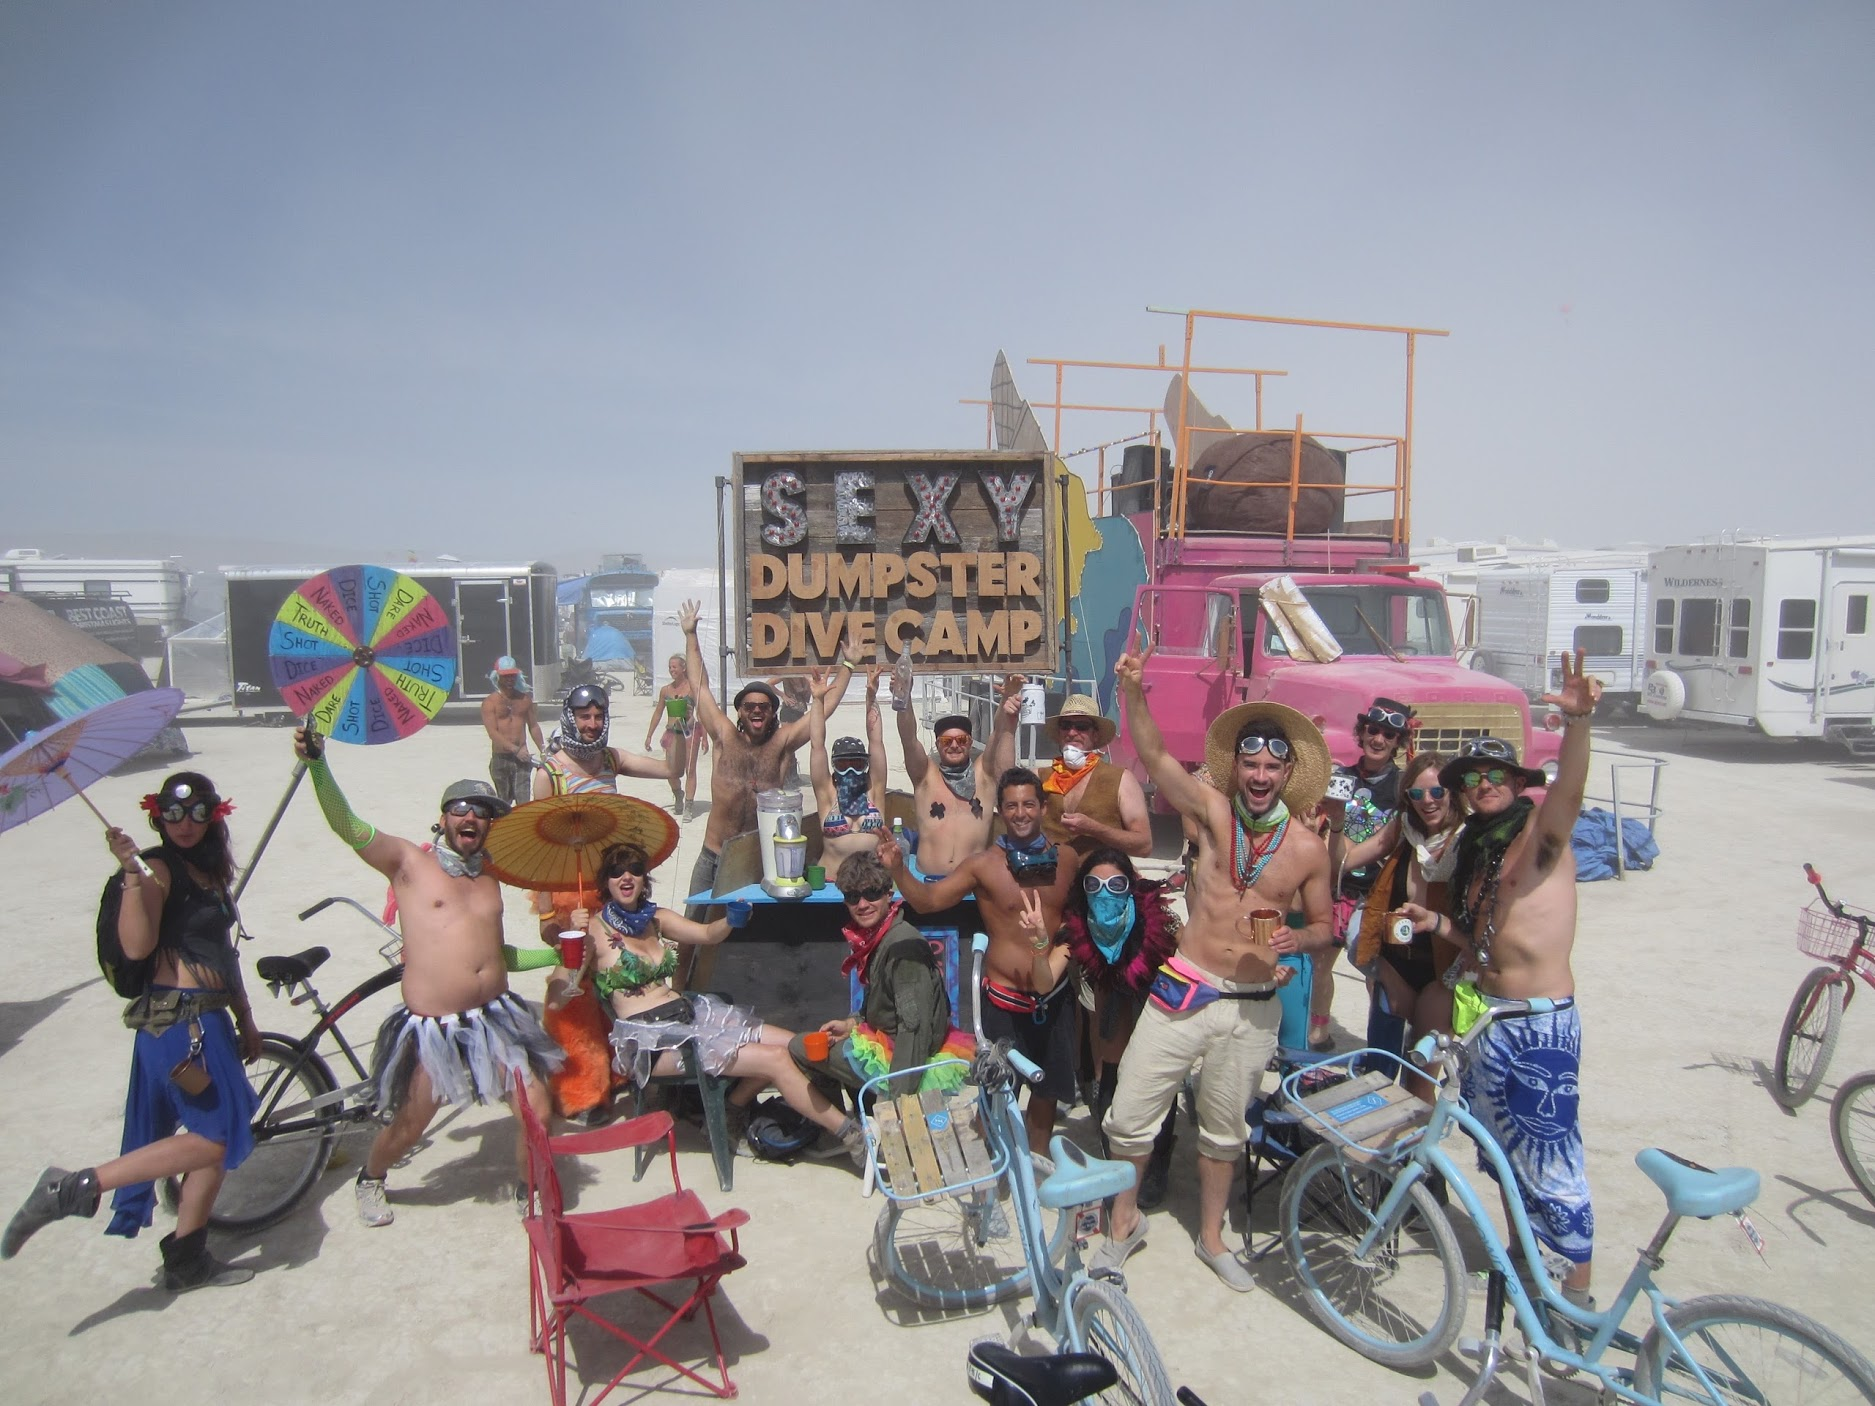 A wild crowd in front of a bar are burning man